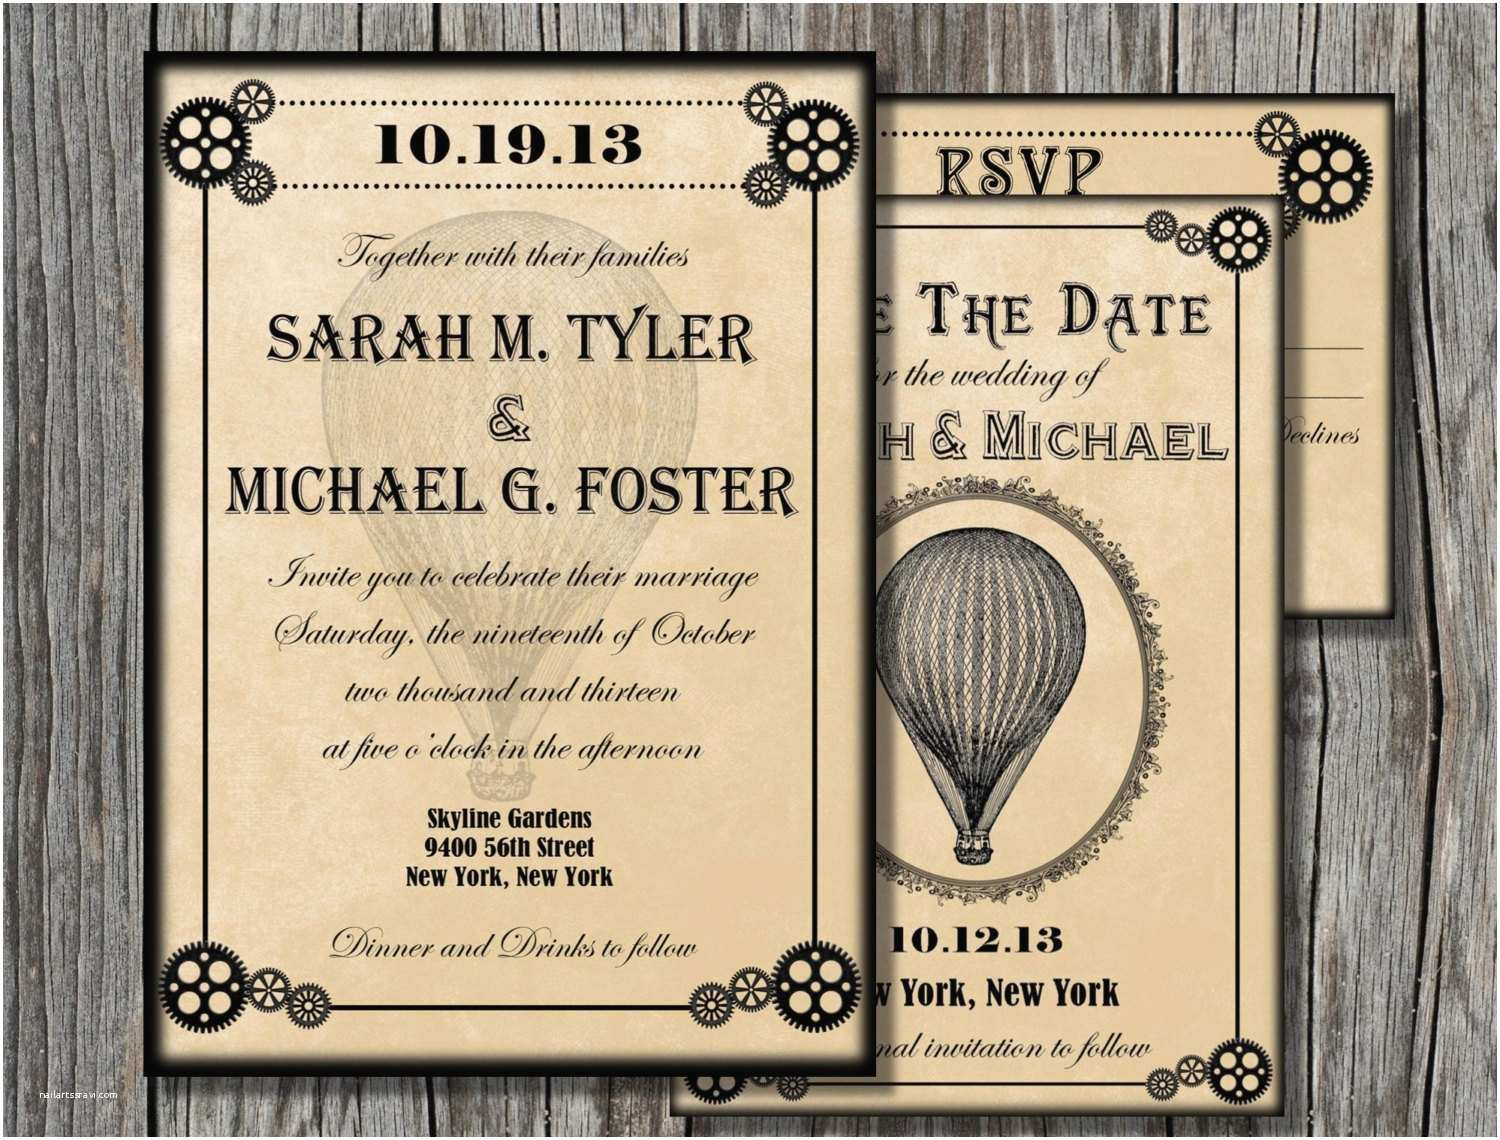 Steampunk Wedding Invitations Steampunk Wedding Invitation Bundle Save the Date by